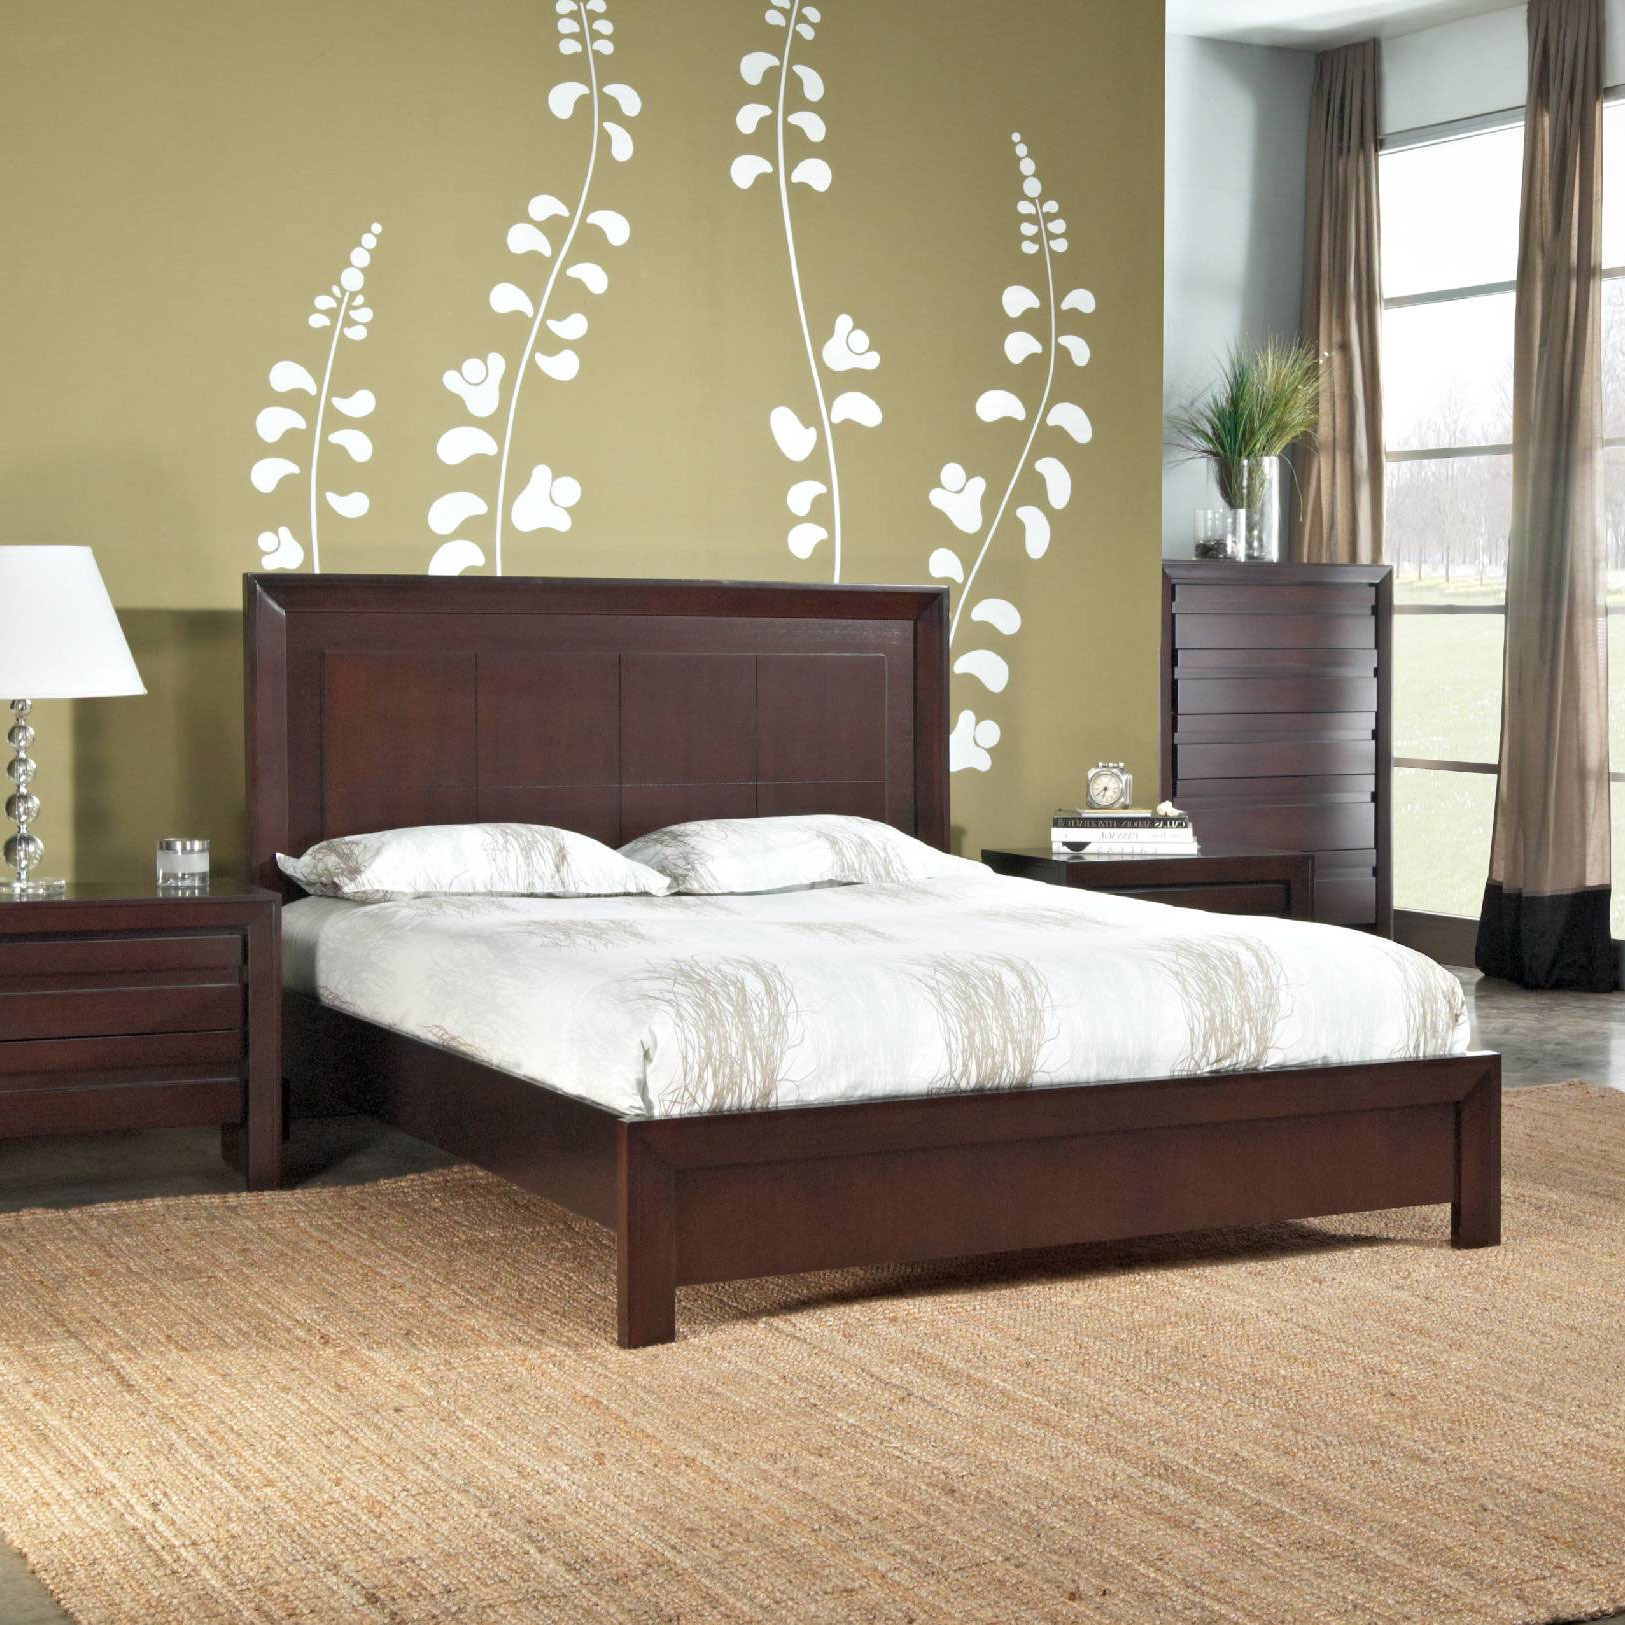 Element platform bed mfi modus furniture international for International decor bed